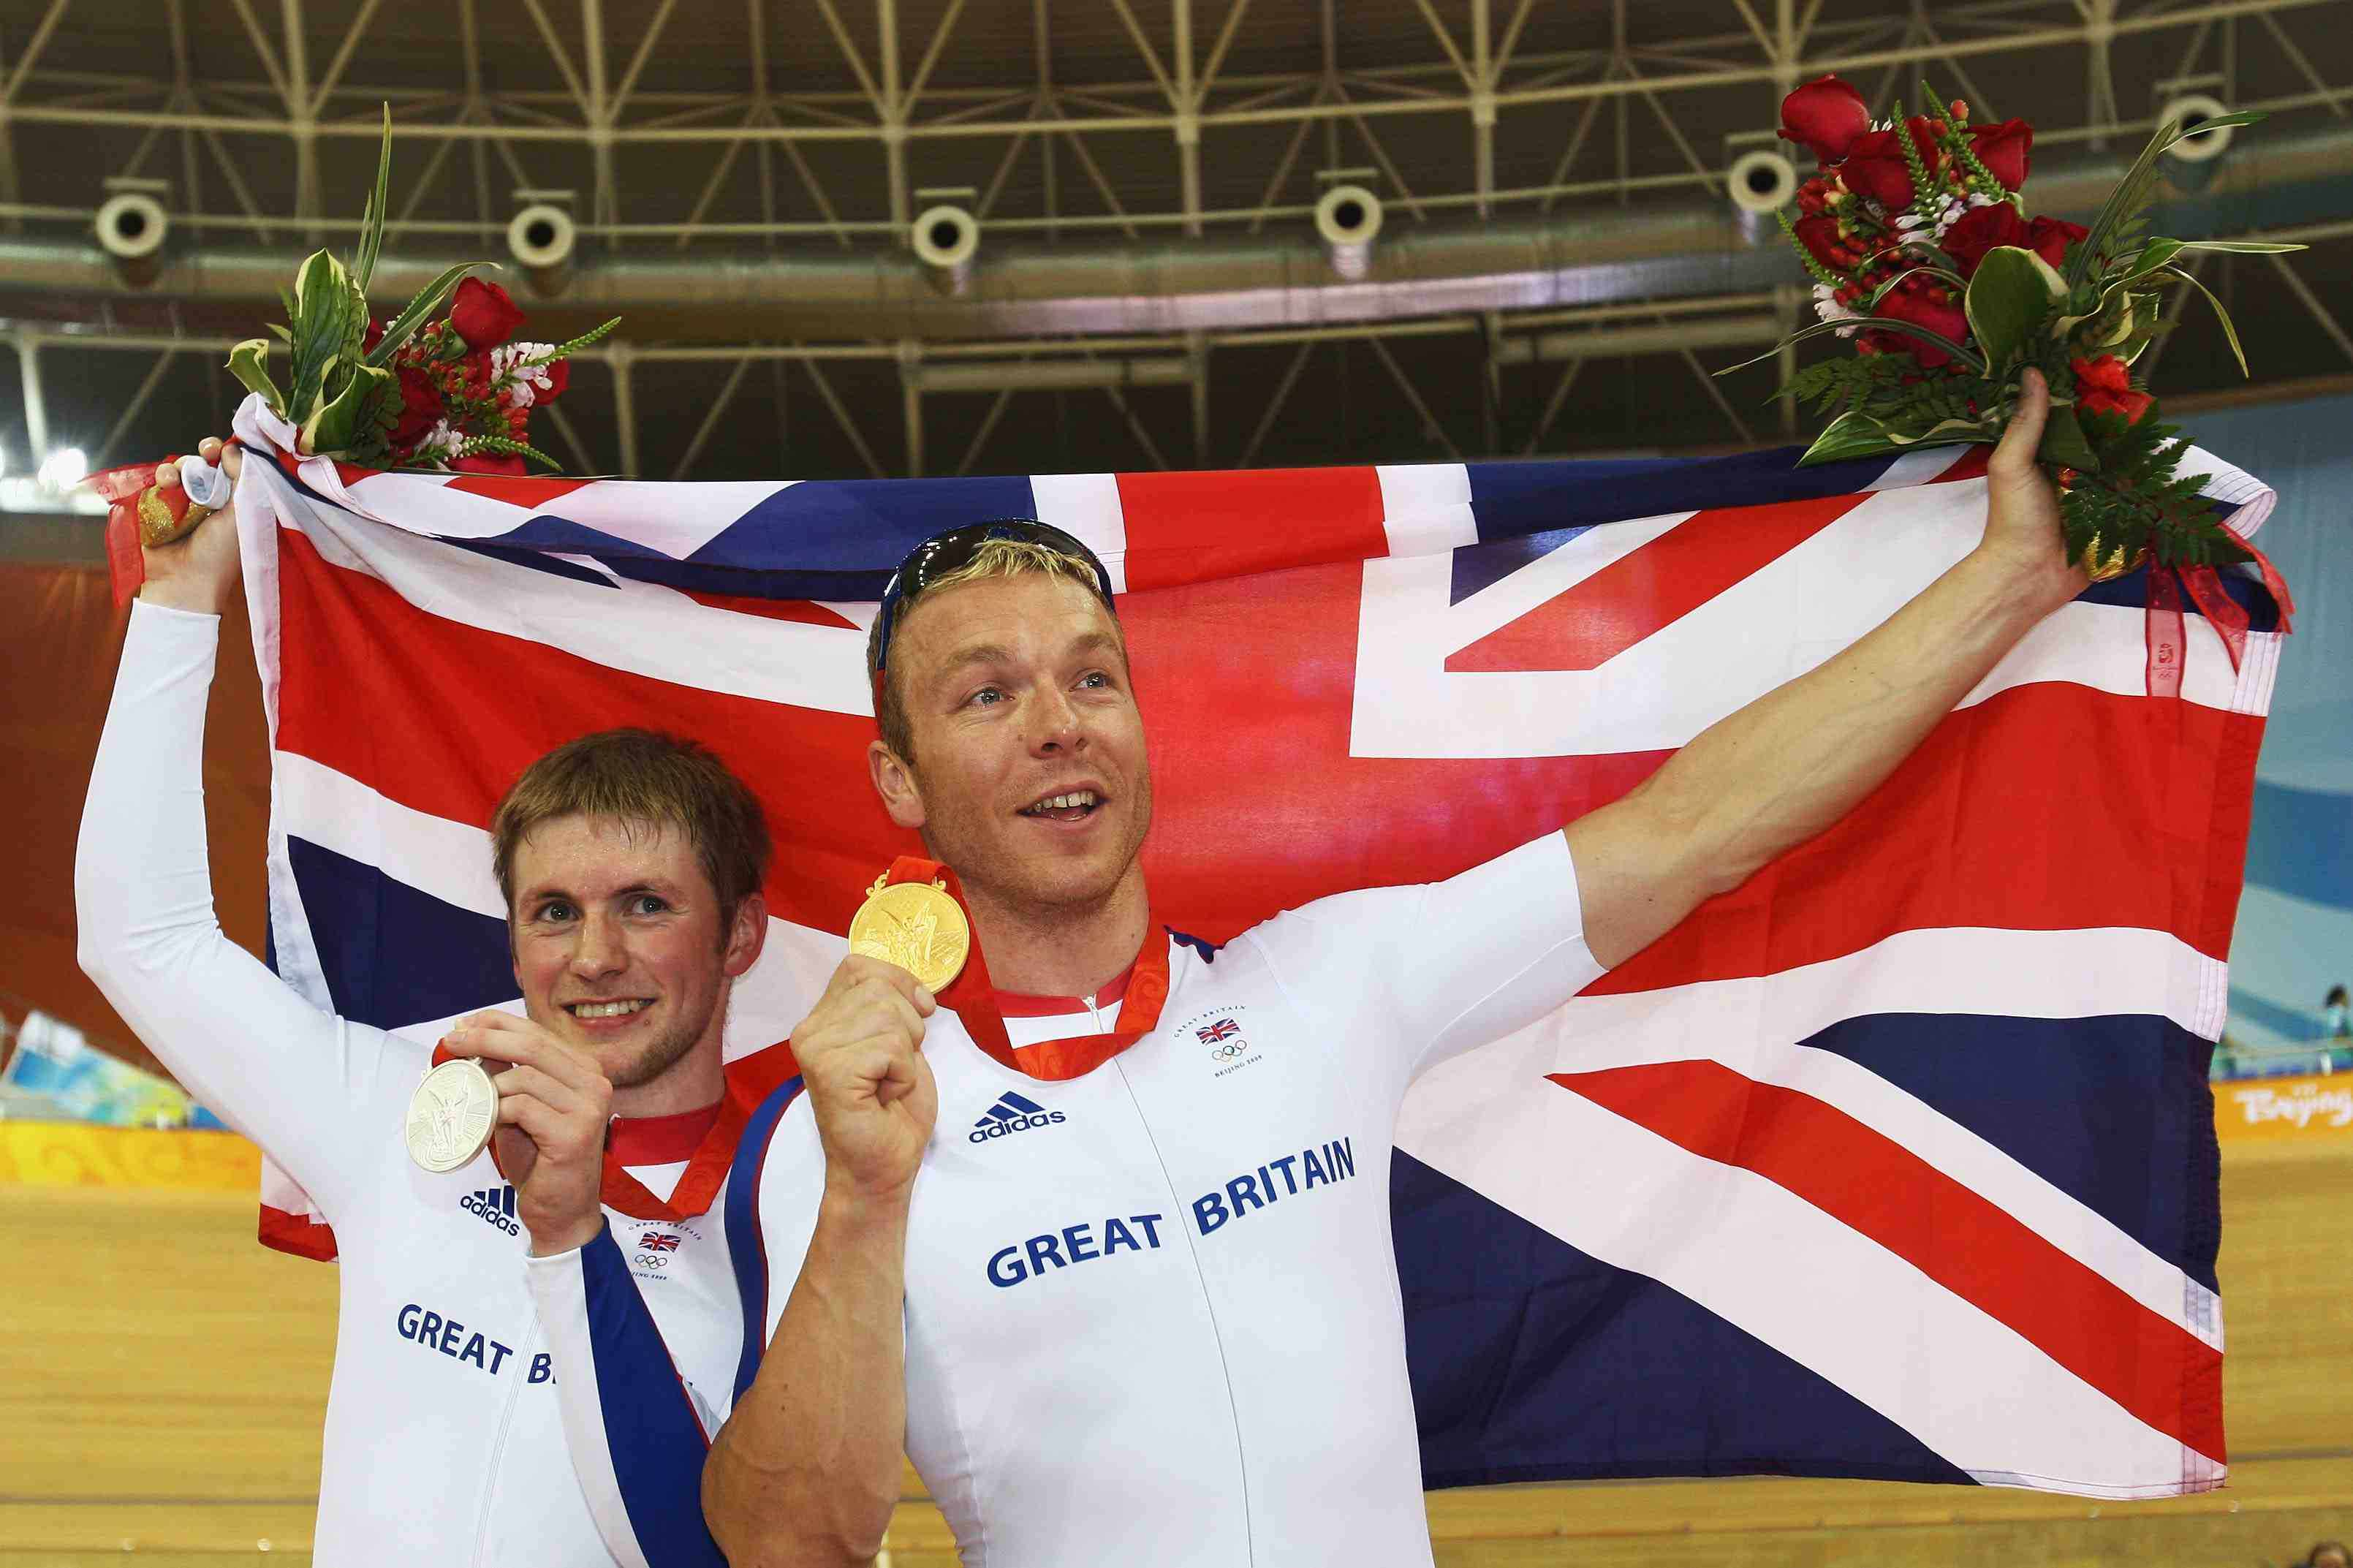 Gold medalist Chris Hoy (R) of Great Britain looks on with Silver medalist Jason Kenny (L) of Great Britain after the Men's Sprint Finals in the track cycling event at the Laoshan Velodrome on Day 11 of the Beijing 2008 Olympic Games on August 19, 2008 in Beijing, China.